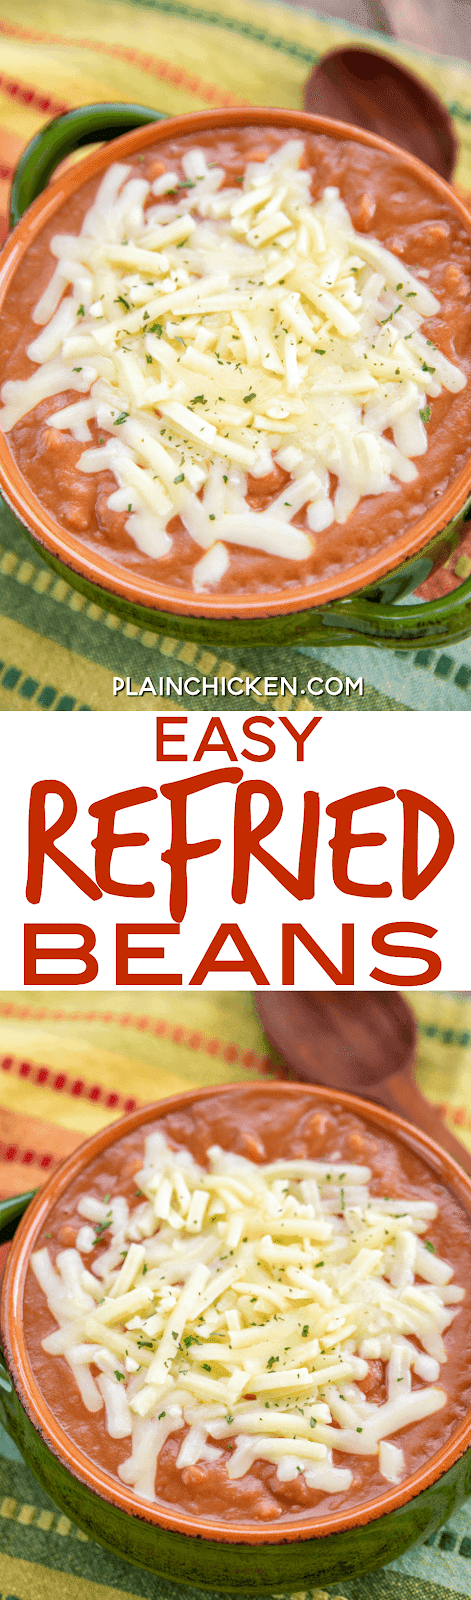 Easy Refried Beans - only 4 ingredients! Refried beans, pinto beans, salsa and Monterey Jack cheese. Seriously delicious! Ready in 10 minutes!! Great as an easy side dish or a dip. Even my refried bean haters LOVED these beans! YUM! #beans #sidedish #mexican #easysidedish